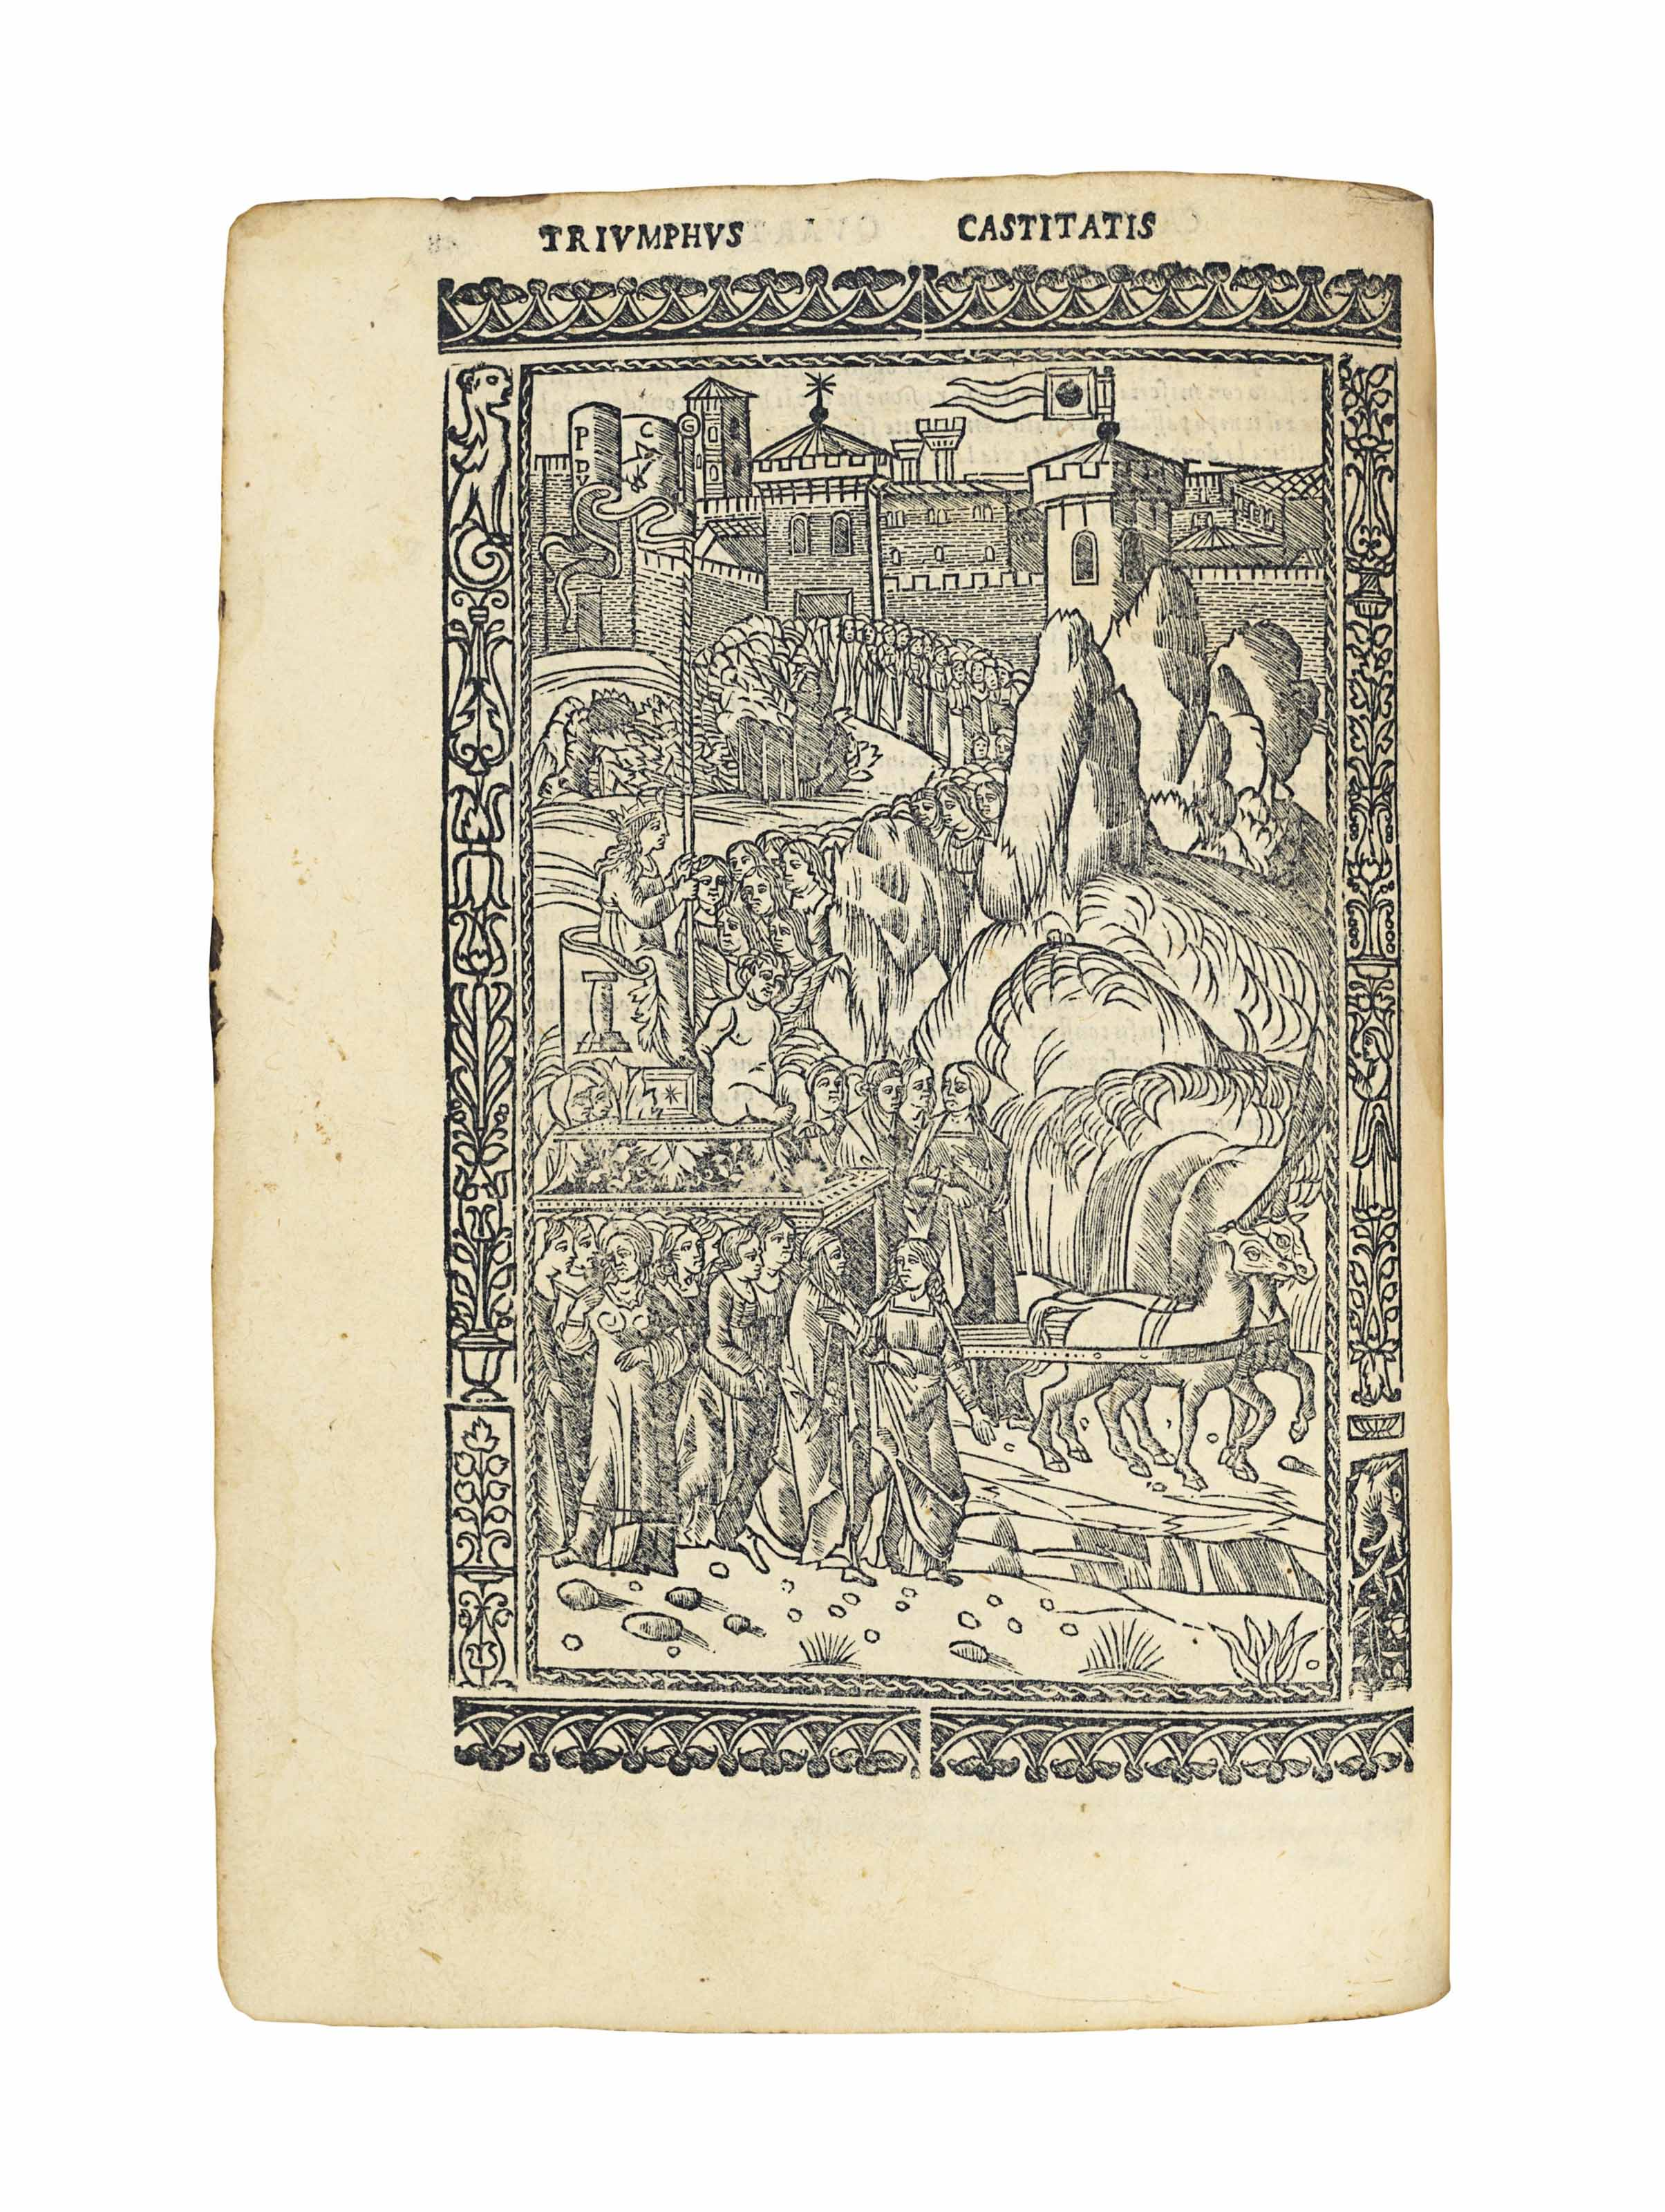 PETRARCA, Francesco (1304-1374). Triomphi di meser Francesco Petrarcha con la loro optima espositione. Venice: Gregorio de Gregorii, 1519. Part 2 (of 2) only, 4° (205 x 150mm). 6 full-page woodcuts and woodcut initials. (Final two leaves with repairs and burn holes causing loss, title remargined, marginal wormtracks sometimes crudely repaired, one full-page woodcut with small hole and torn with some loss, clean tear to 2F7, some browning, soiling and staining.) Later boards backed in vellum, gilt spine (some tiny wormholes to spine). Provenance: Biblioteca Prov. Ven. Letteraria (stamp on title and several other leaves) -- Biblioteca Classica Italiana (stamps on title) -- Collegio C. Arioi, Brescia (stamp on title) -- Compagnia del Gesú (book label).